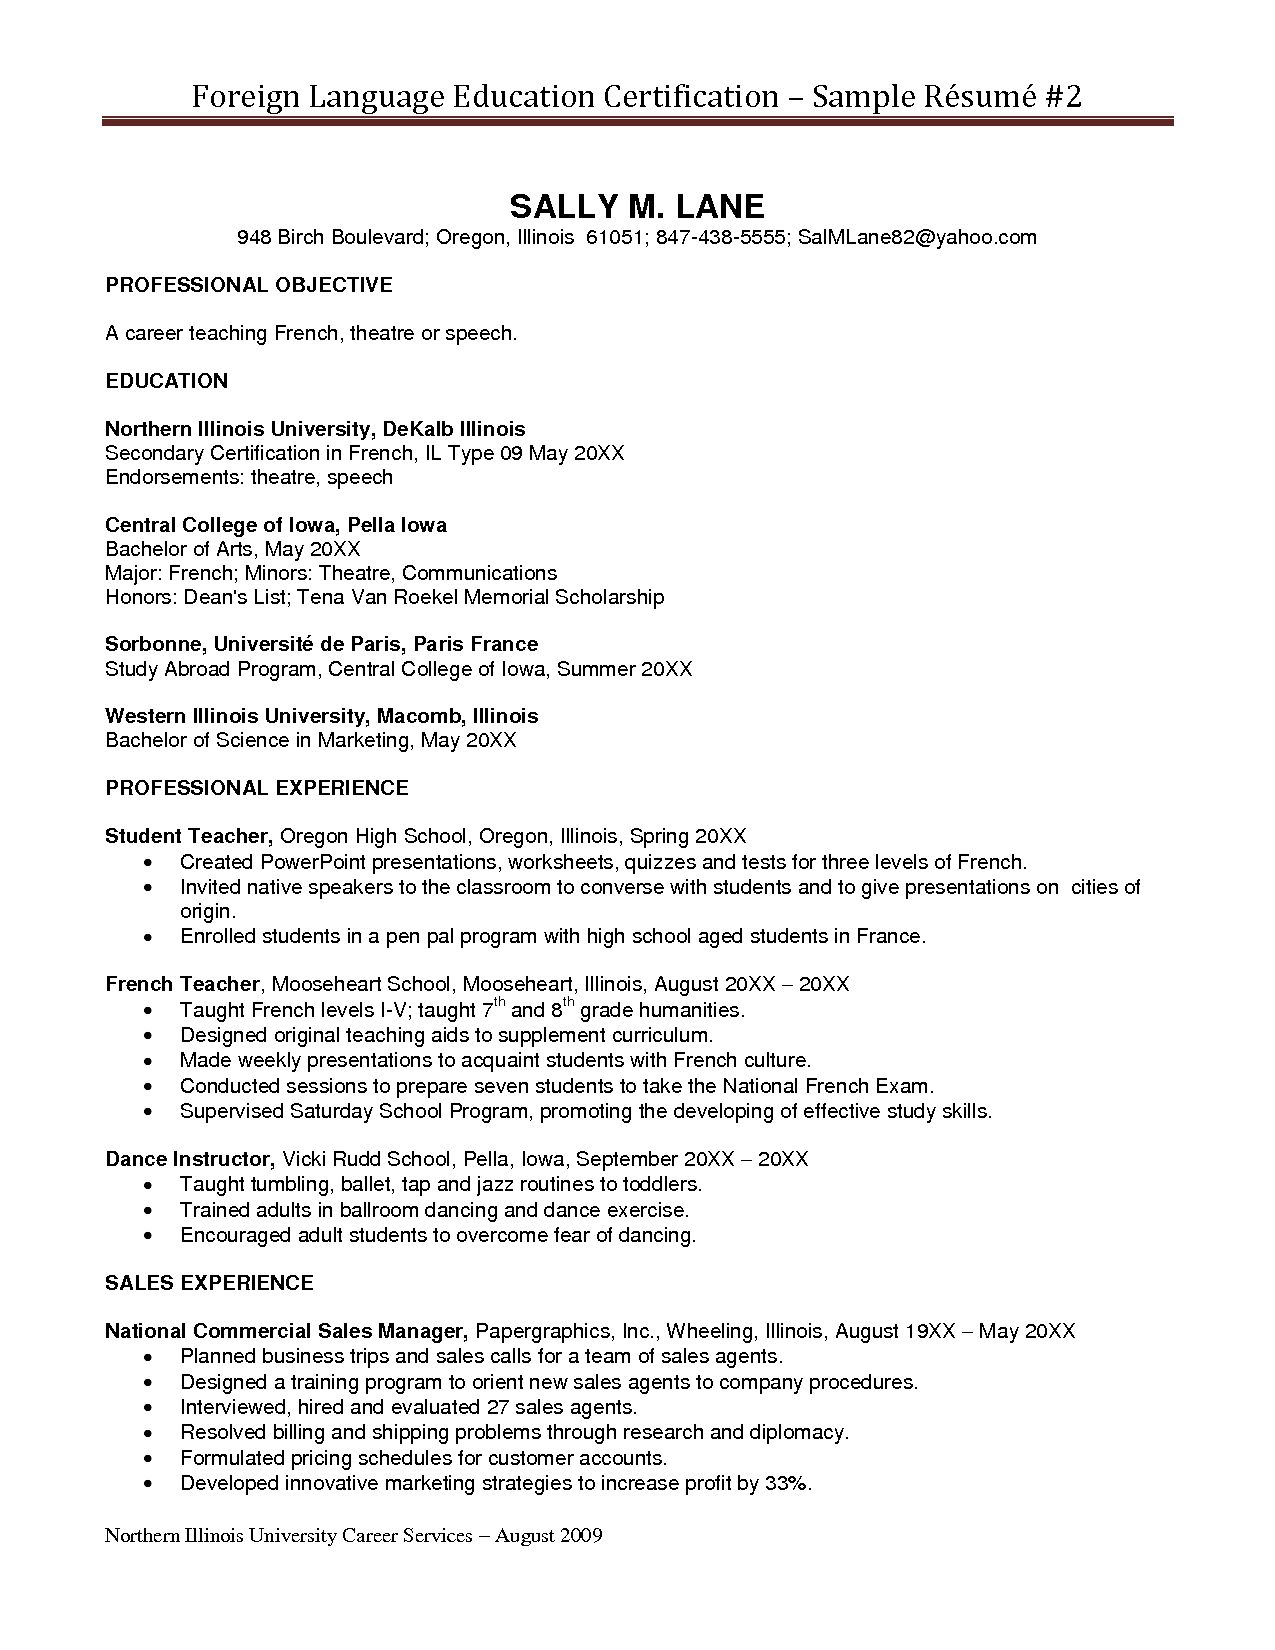 sample resume with certifications listed